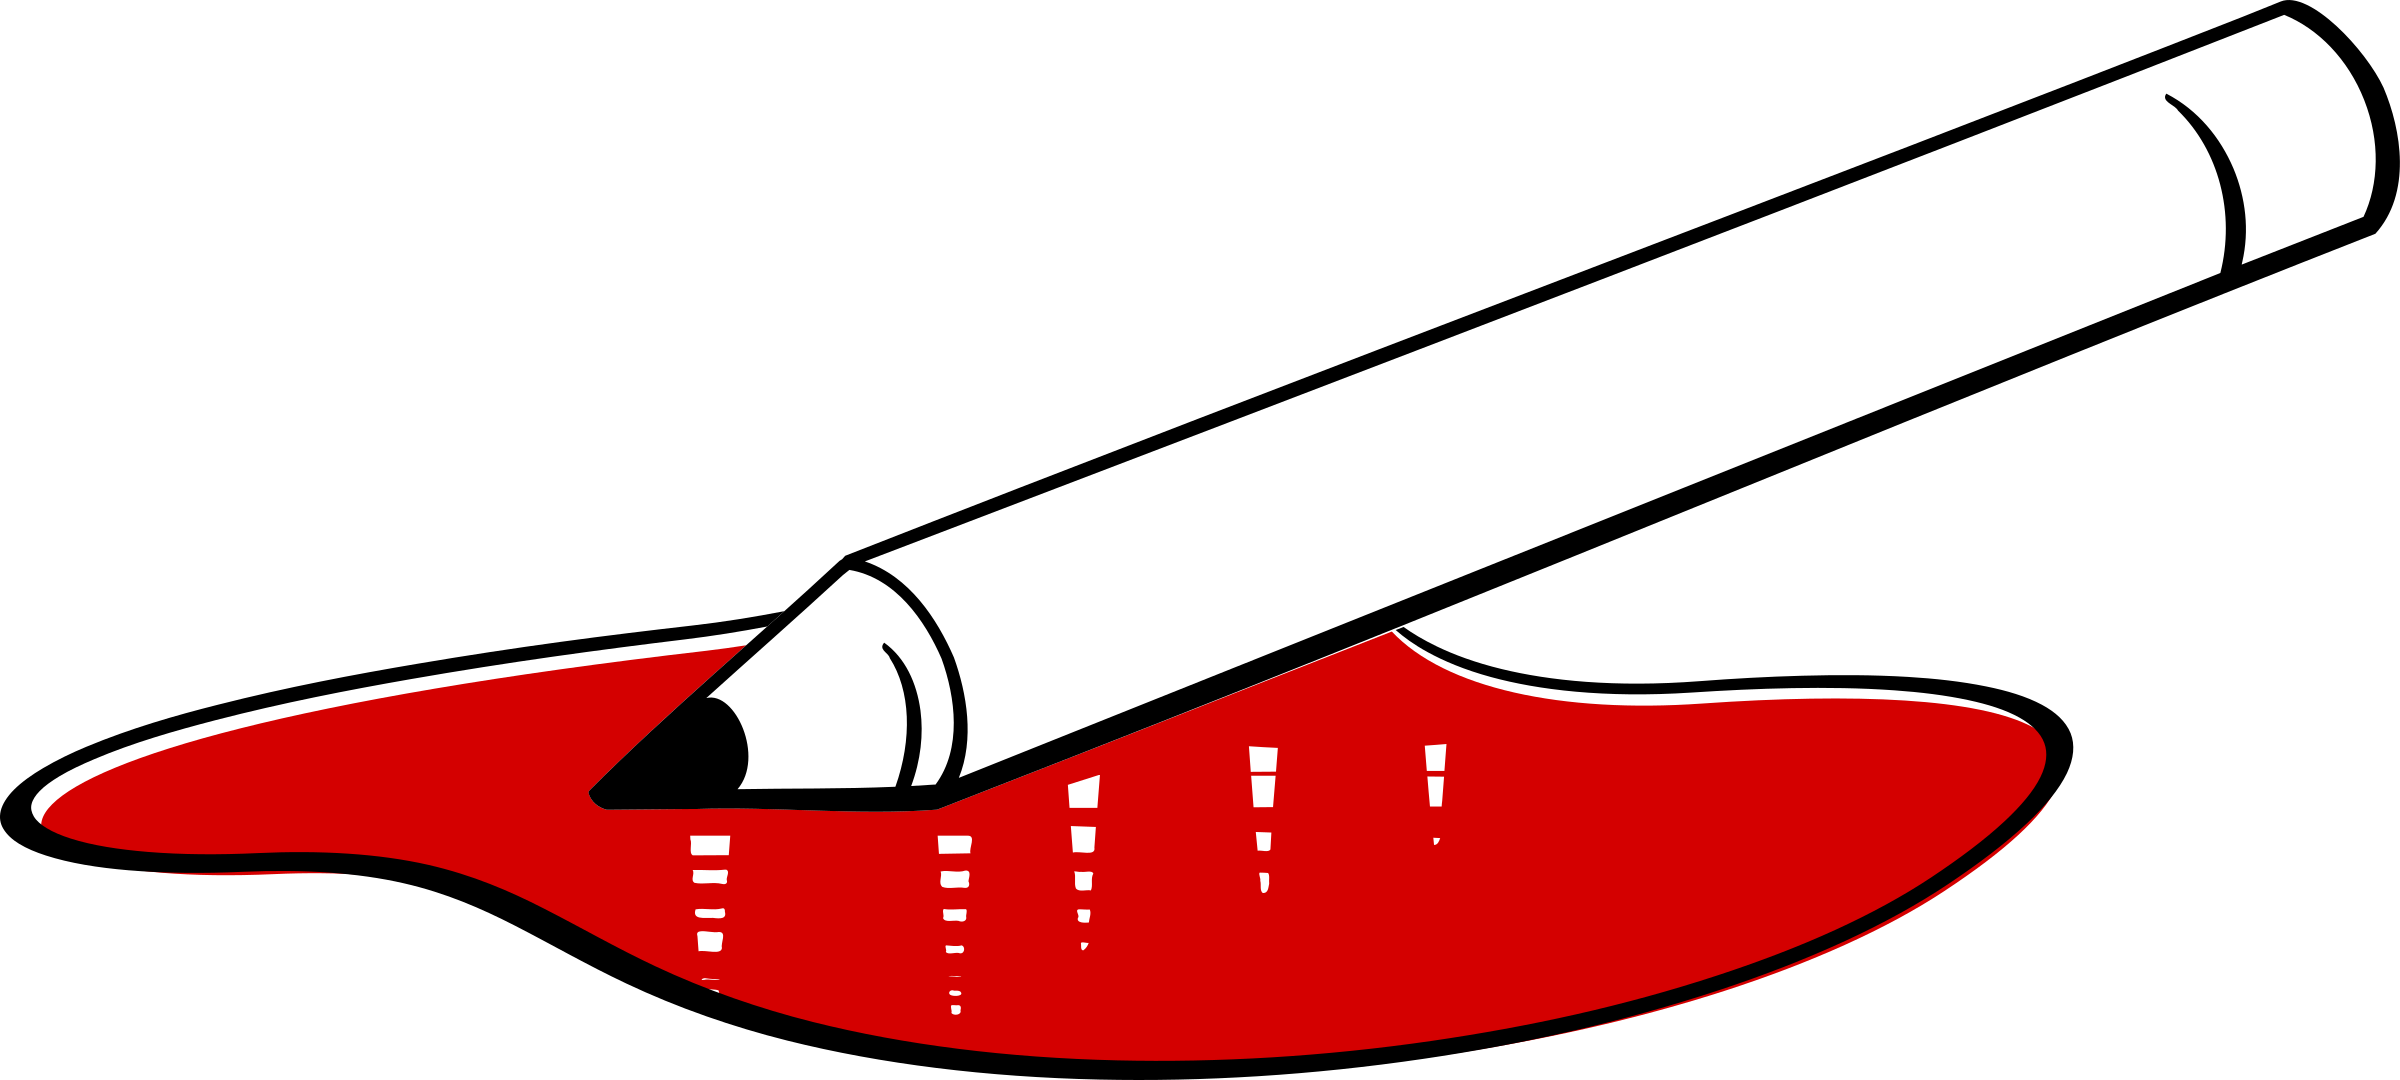 Puddle of blood png. A pencil in icons